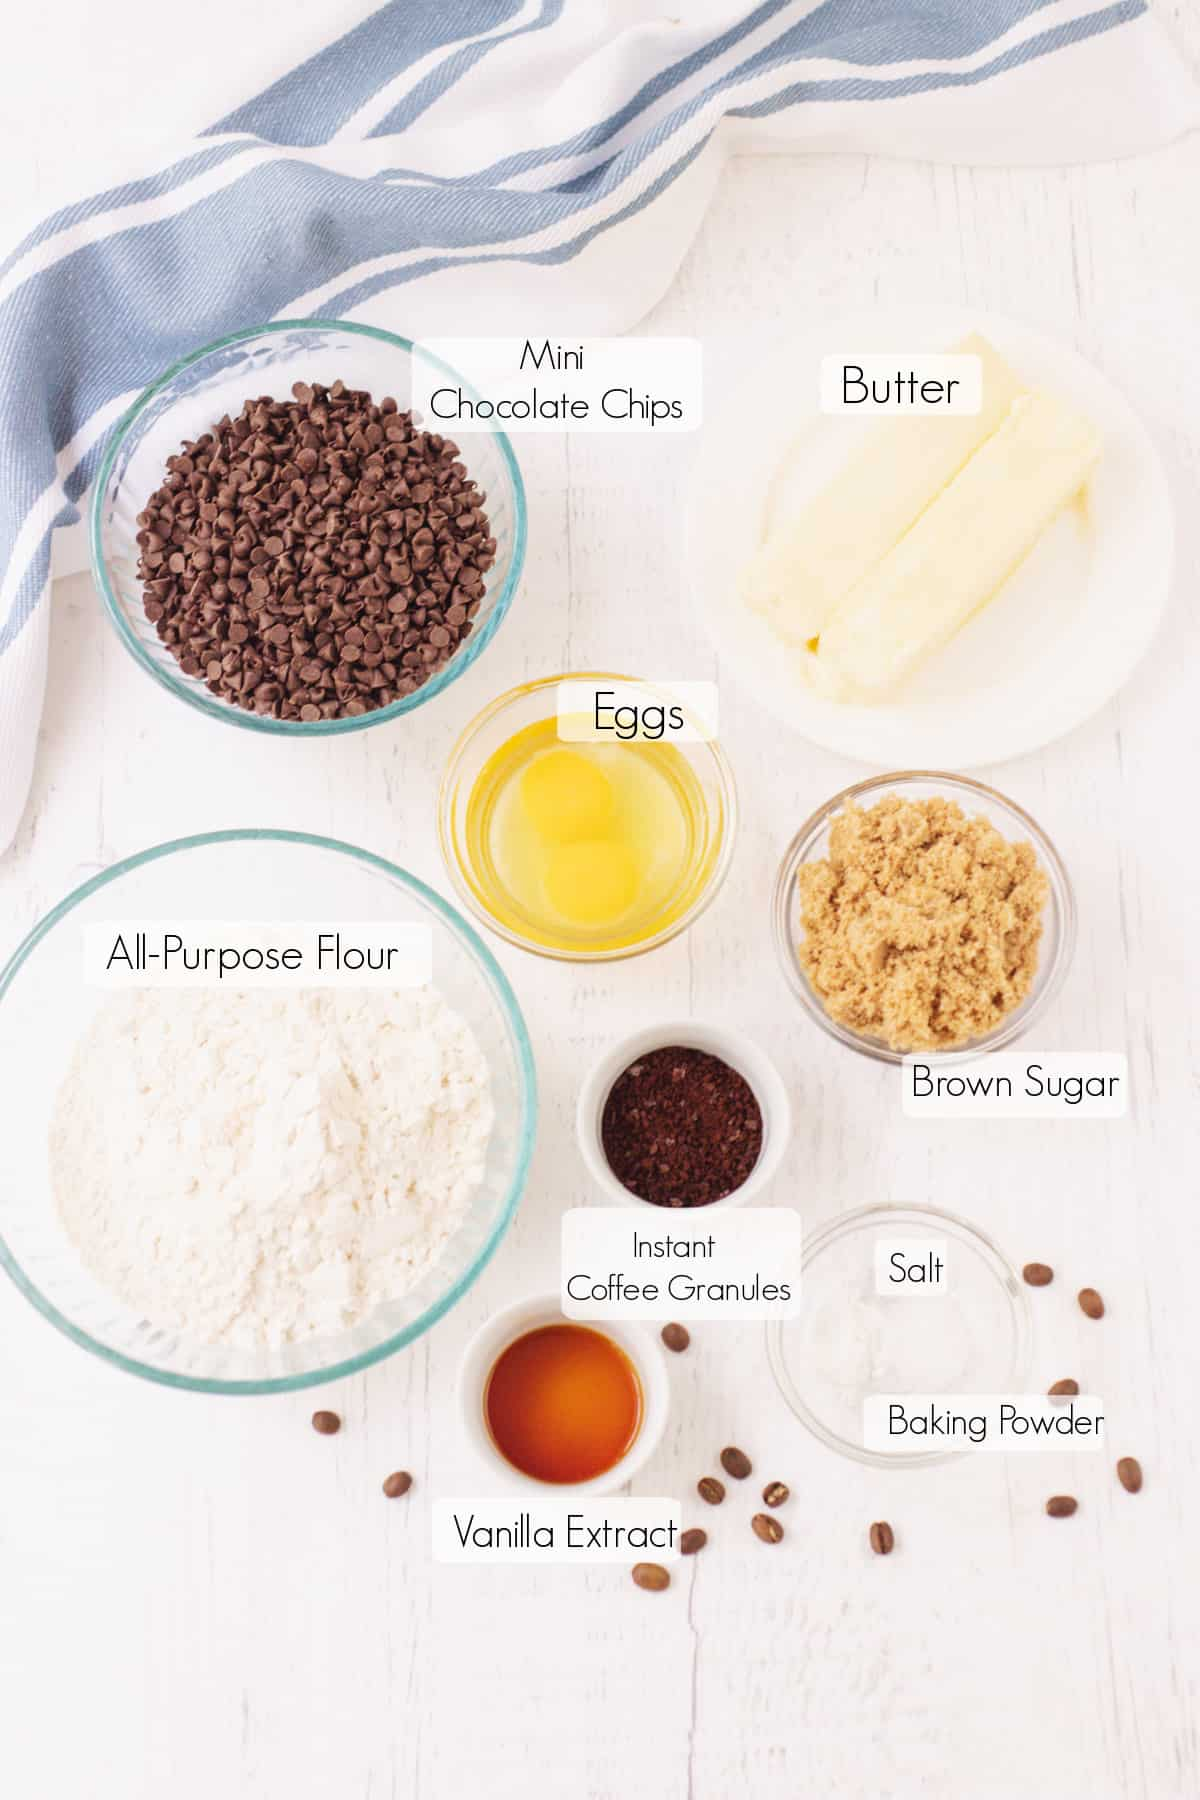 Labeled ingredients to make chocolate chip coffee cookies with blue and white towel in upper background.